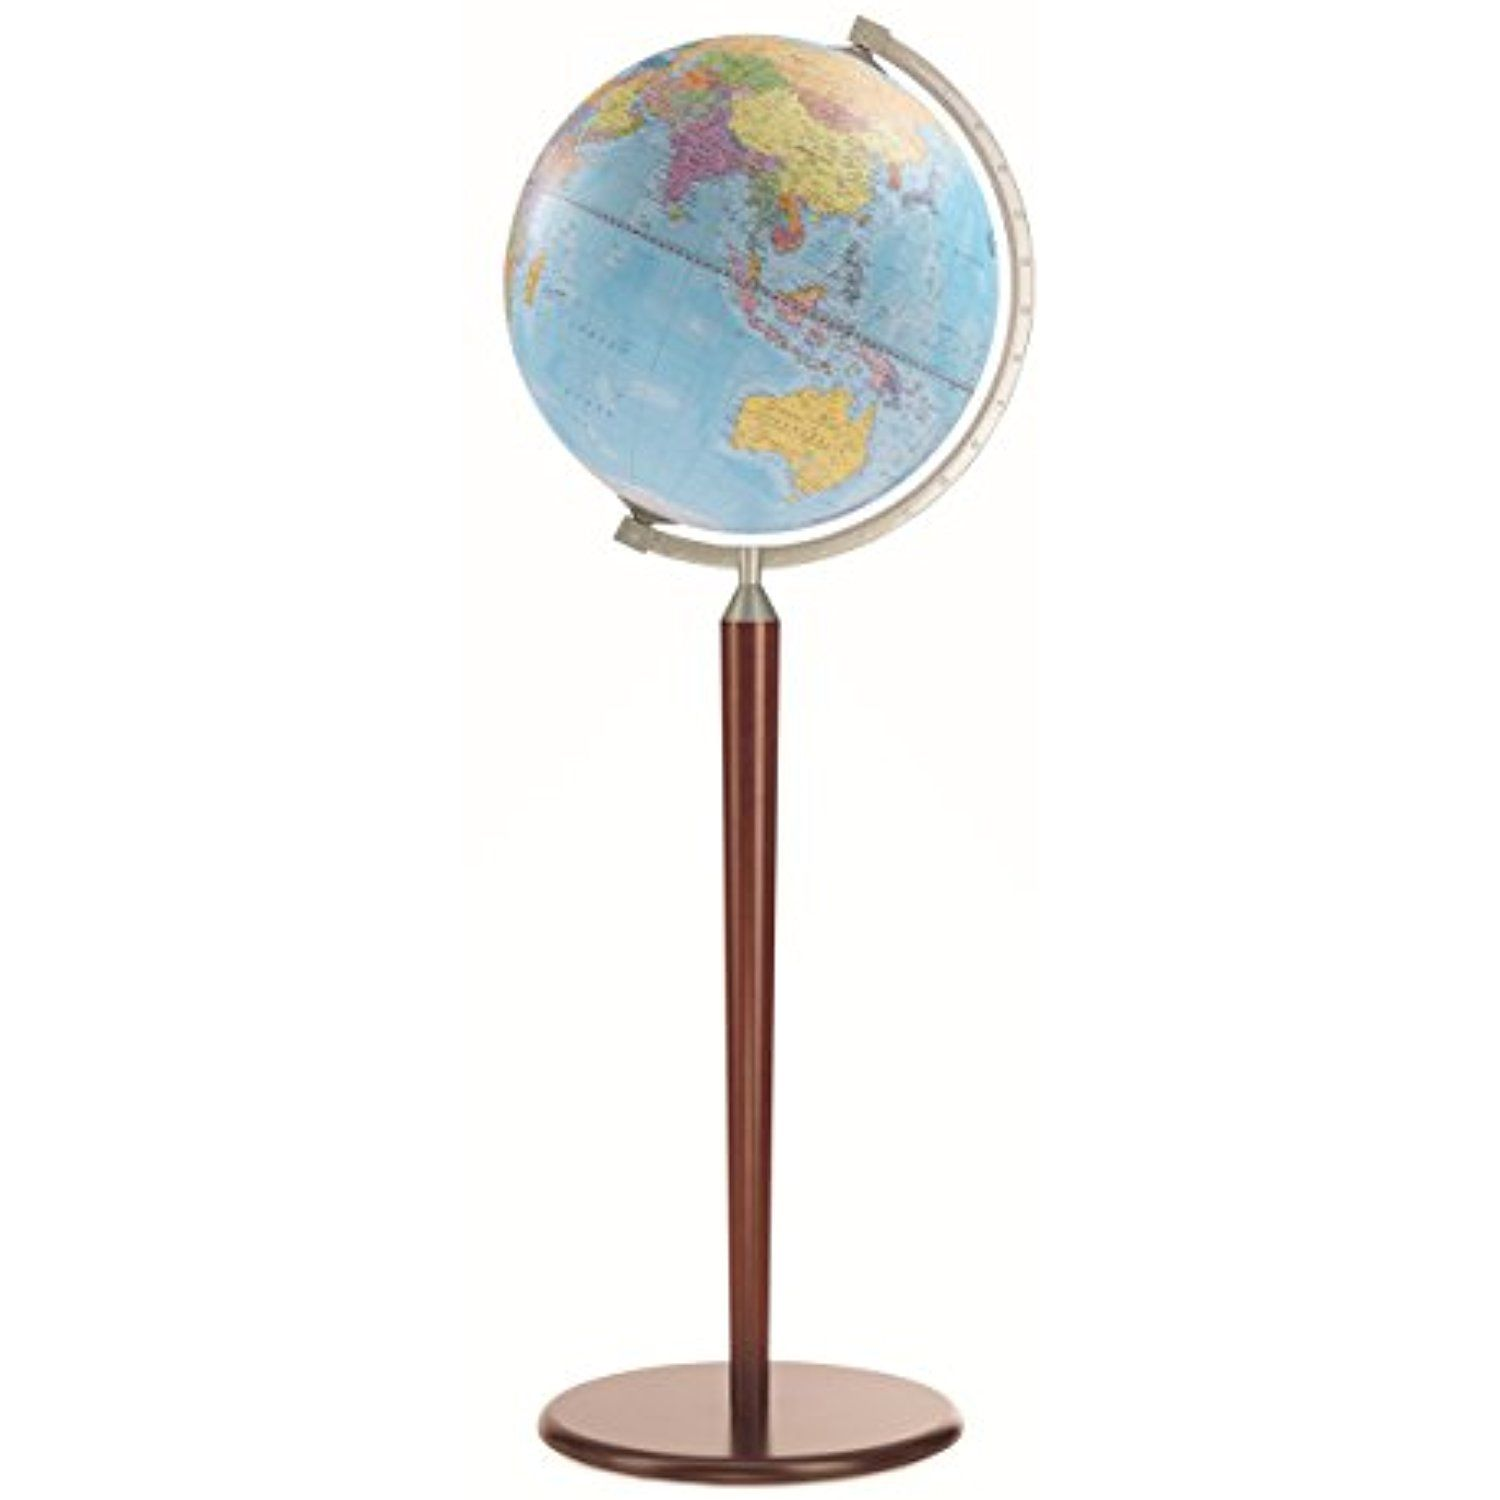 decorative floors and pin collection with globe brass stand a antique of from floor unique modern